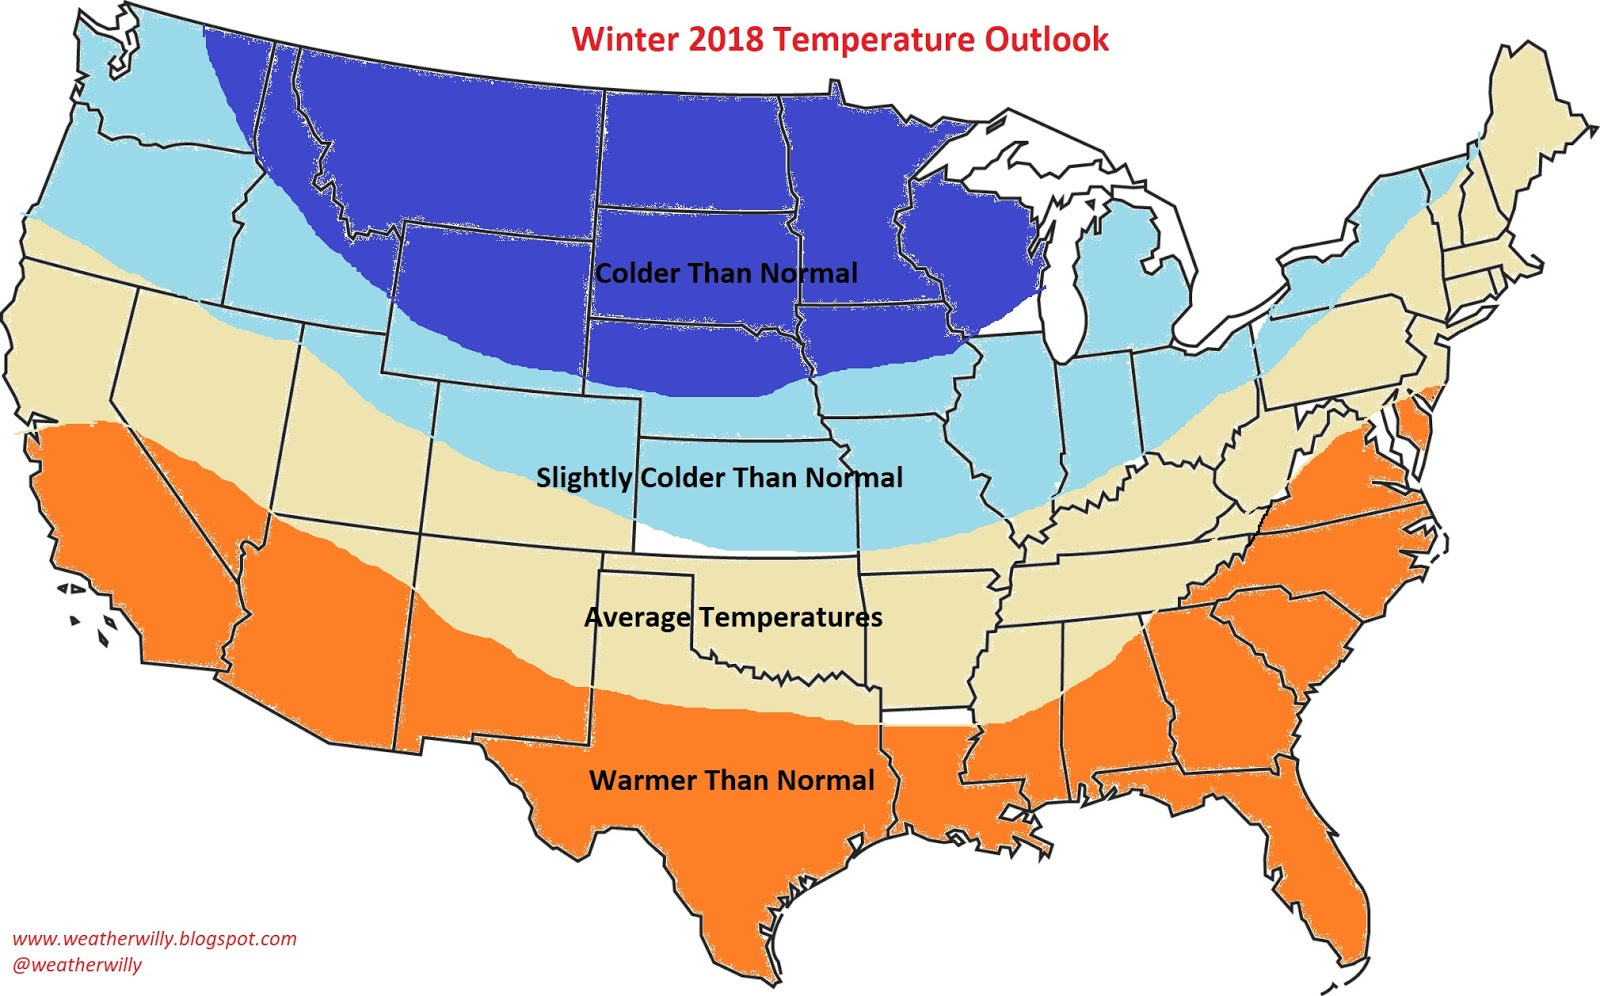 Well That Time Of Year Is Finally Here When We Speculate On What The Winter Season Ahead May Bring Below Is My Map Release Of The Winter 2018 Outlook